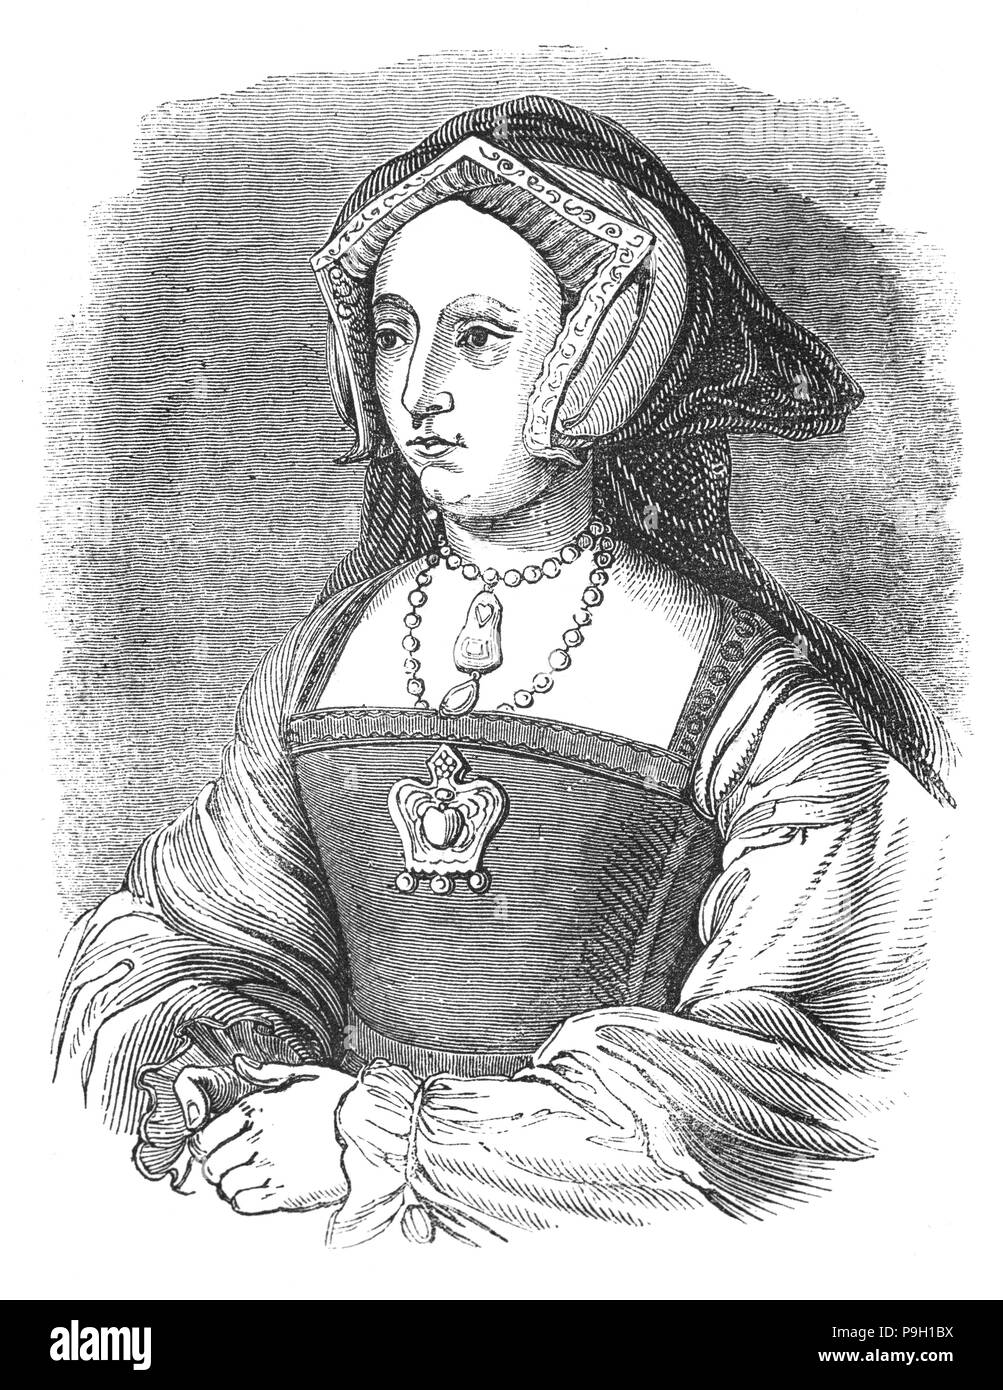 A portrait of Jane Seymour (1508 – 1537),Queen of England from 1536 to 1537 as the third wife of King Henry VIII. She succeeded Anne Boleyn as queen consort following the latter's execution in May 1536. She died of postnatal complications less than two weeks after the birth of her only child, a son who became King Edward VI. She was the only one of Henry's wives to receive a queen's funeral, and his only consort to be buried beside him in St George's Chapel at Windsor Castle. - Stock Image